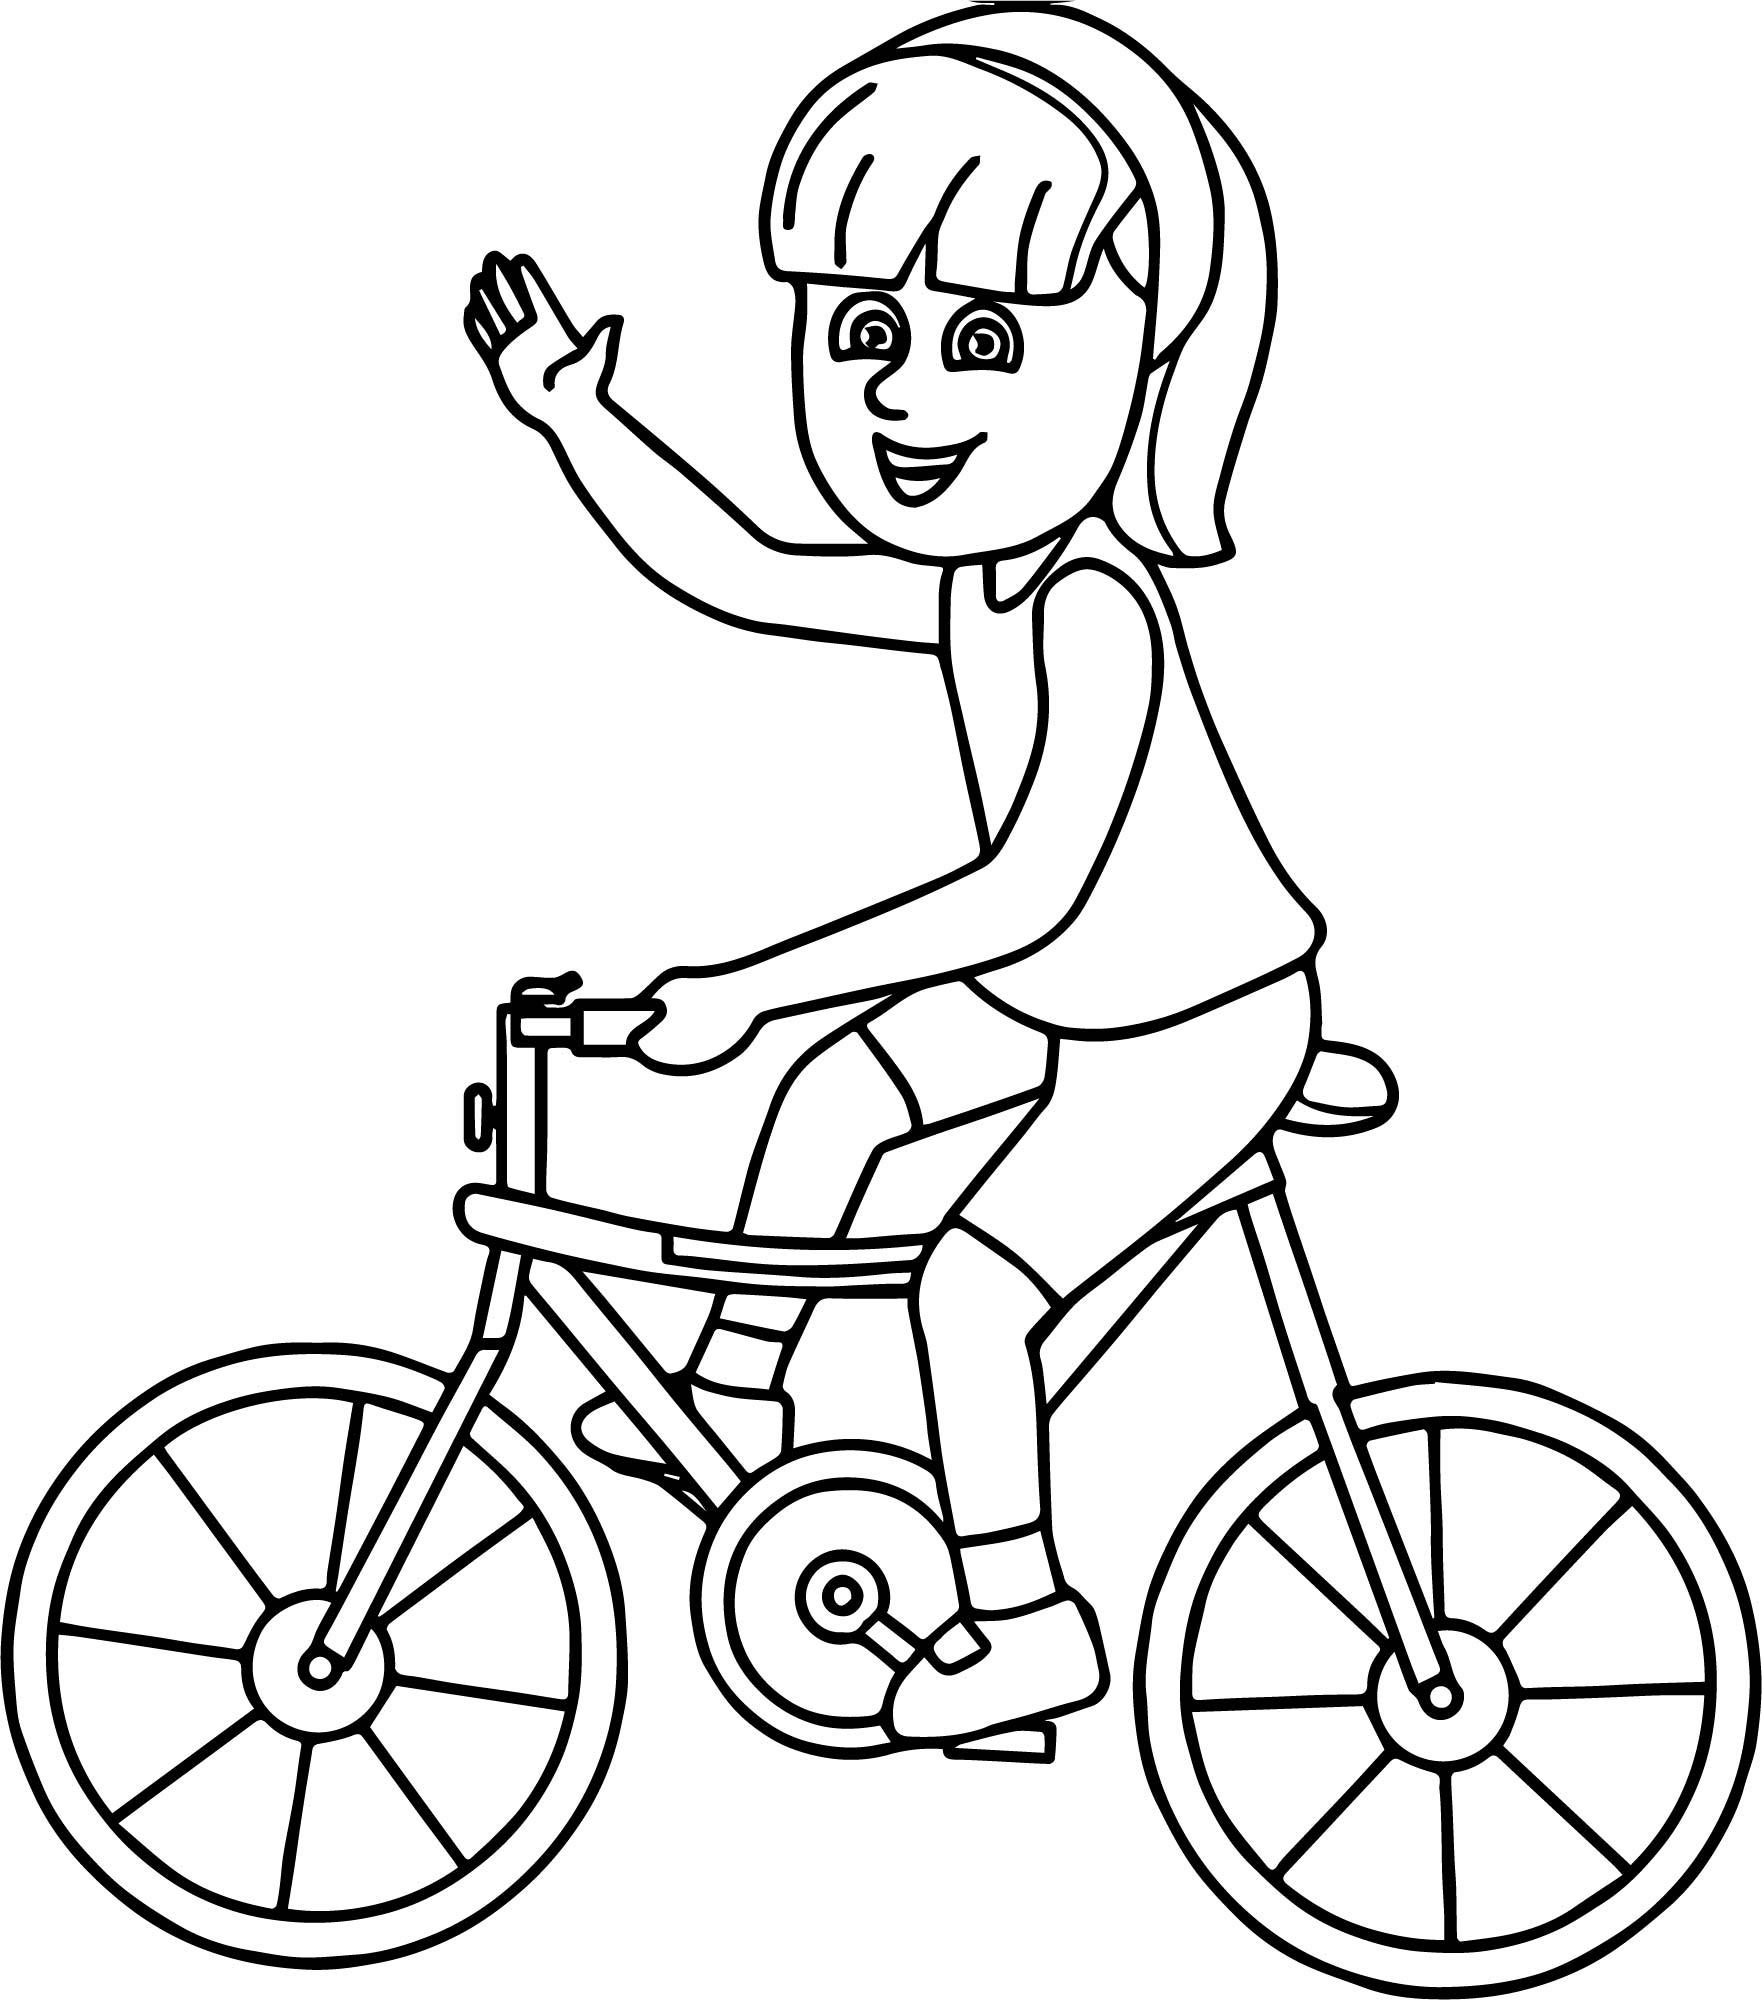 Bike Coloring Pages Adorable Riding Girl On Bicycle Coloring Page  Wecoloringpage Inspiration Design